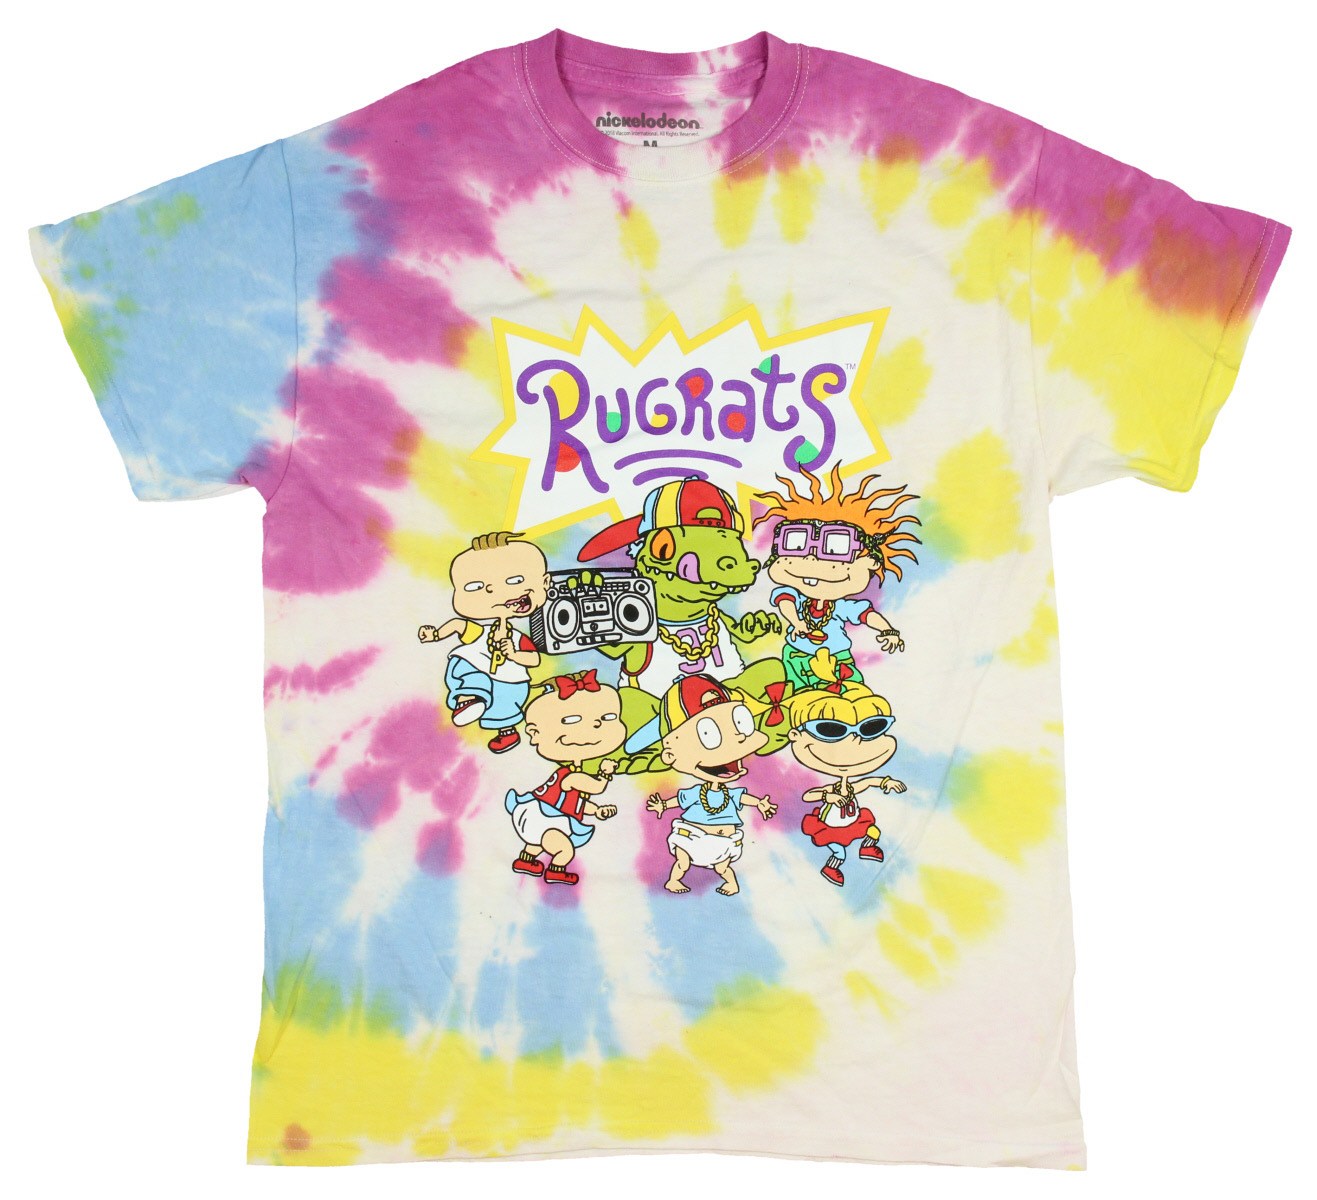 2ed477ac634 Nickelodeon Rugrats Shirt 90s Cartoon Characters Tie Dye T-shirt (Small)